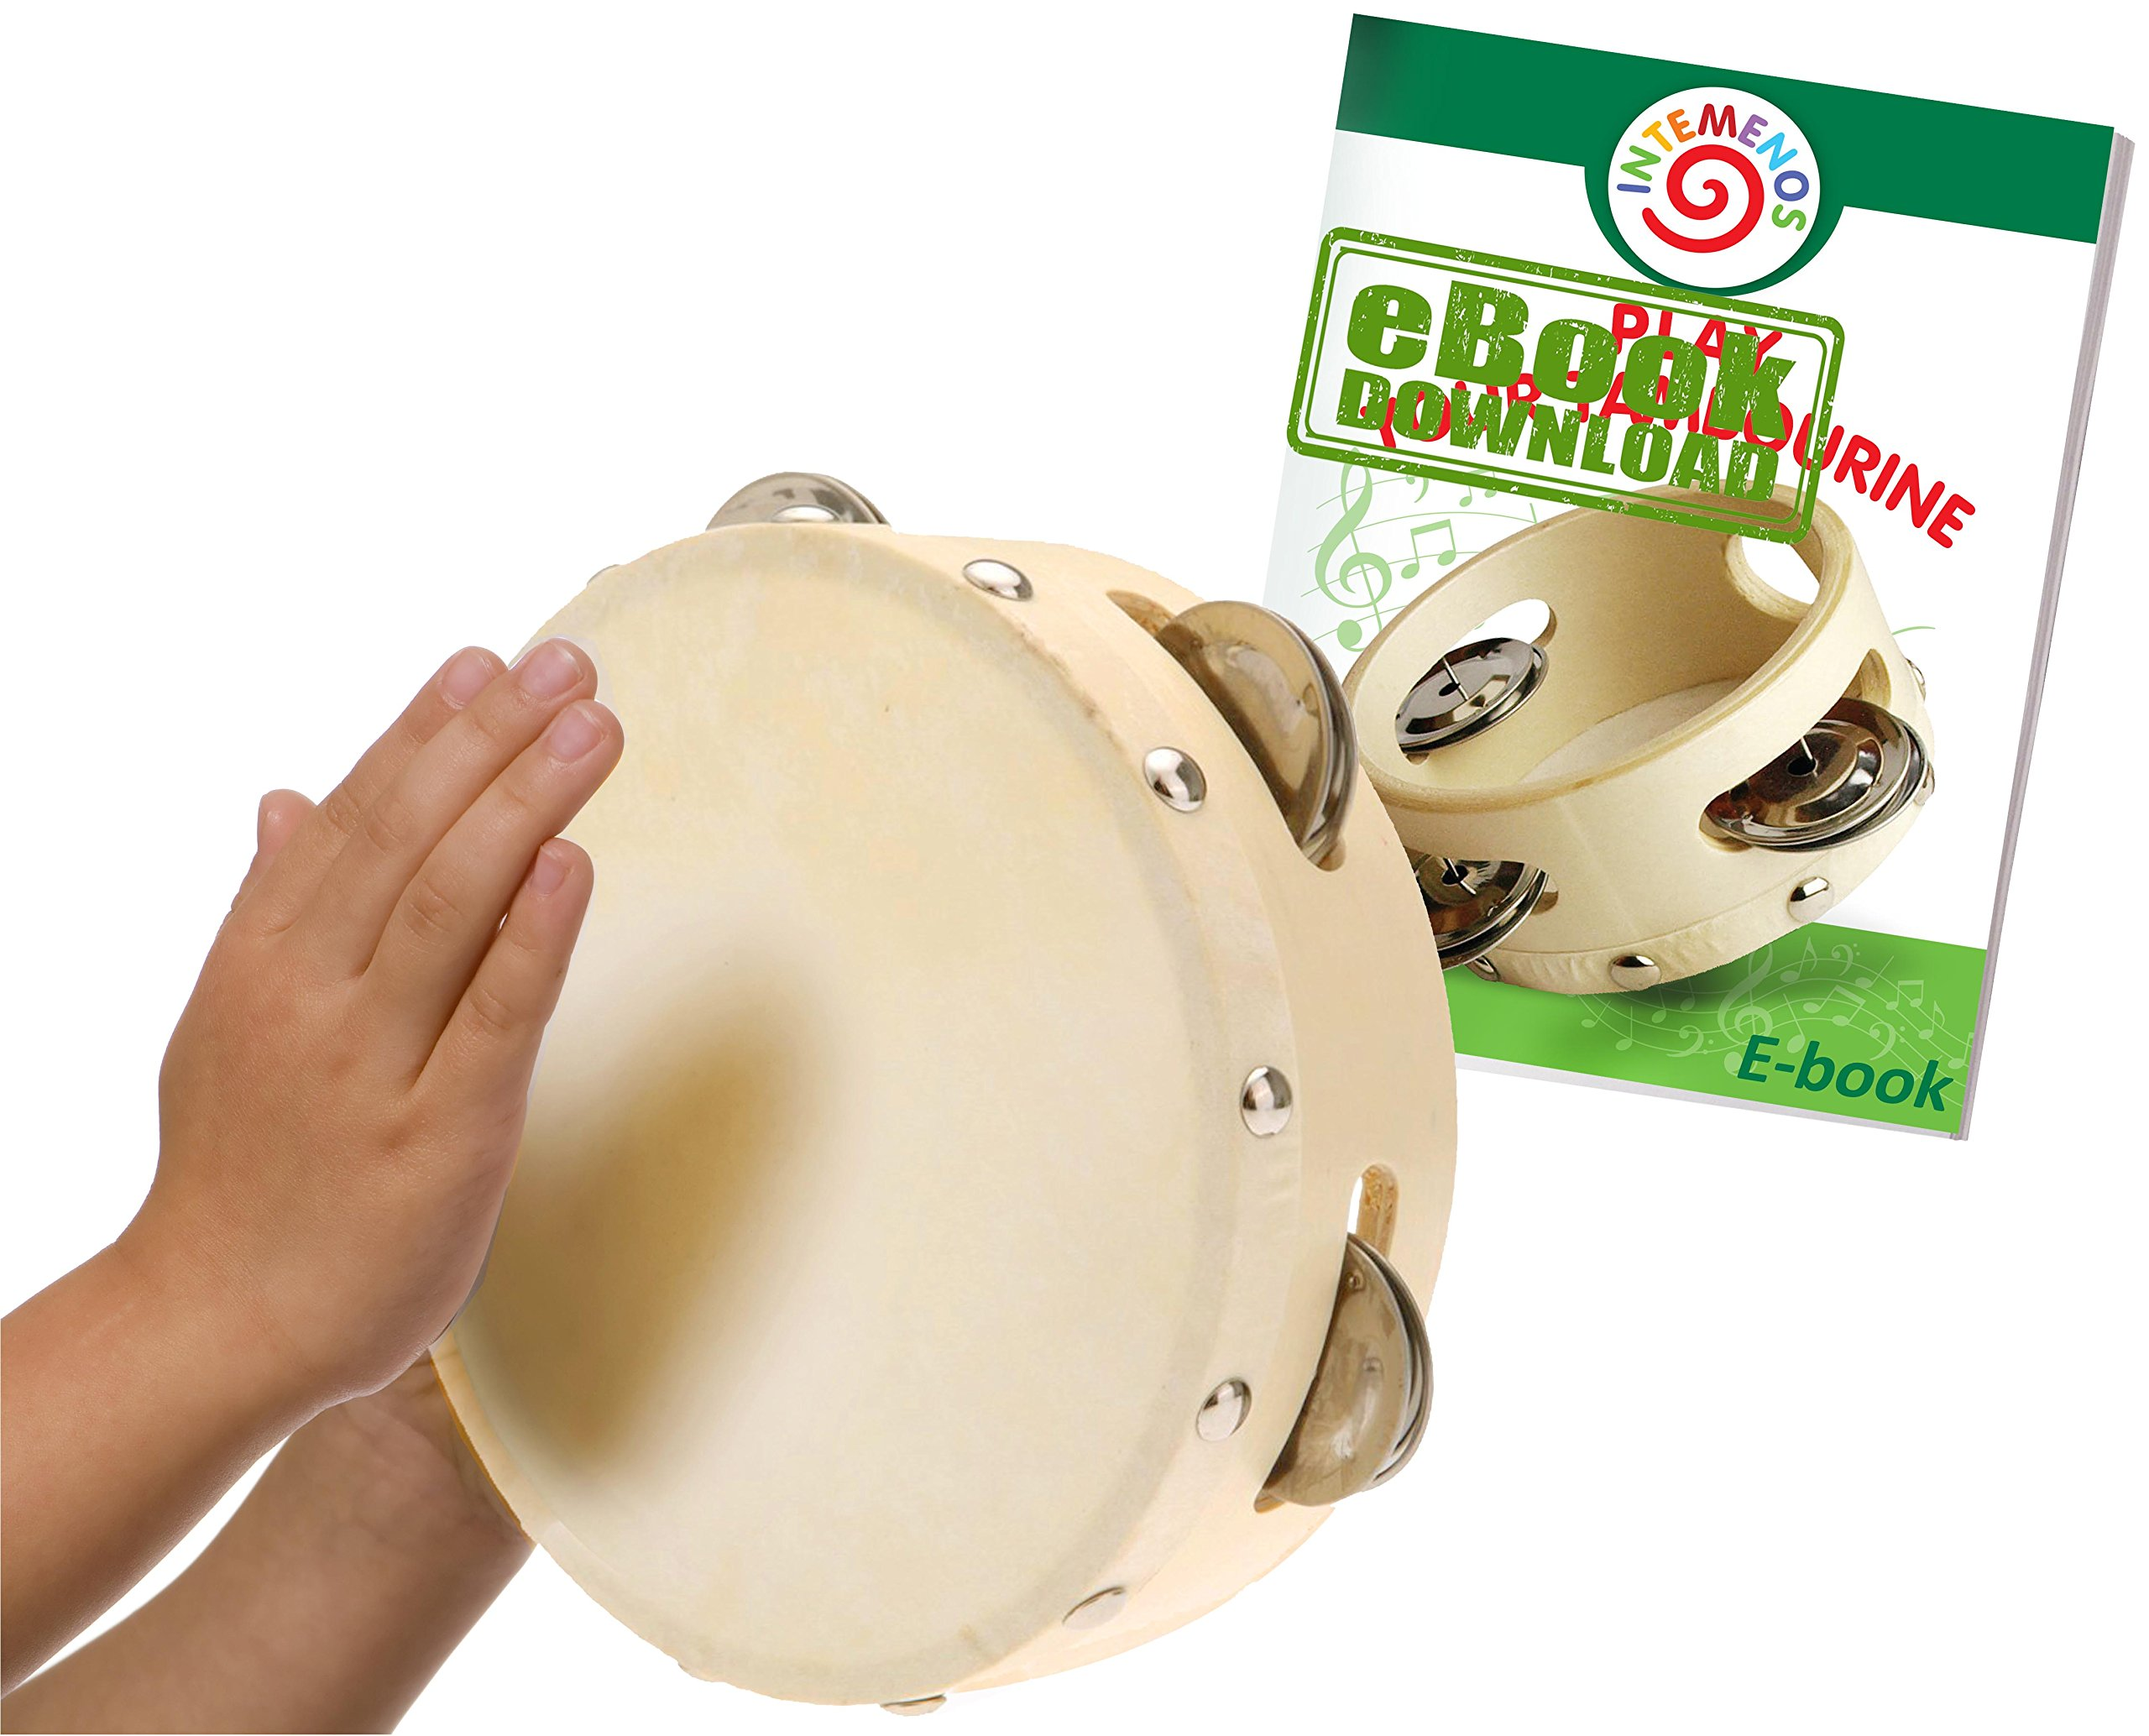 Tambourine for Kids - 6 inch Drum Tambourine with Metal Jingles - Tamburine Percussion Musical Instrument for Kids